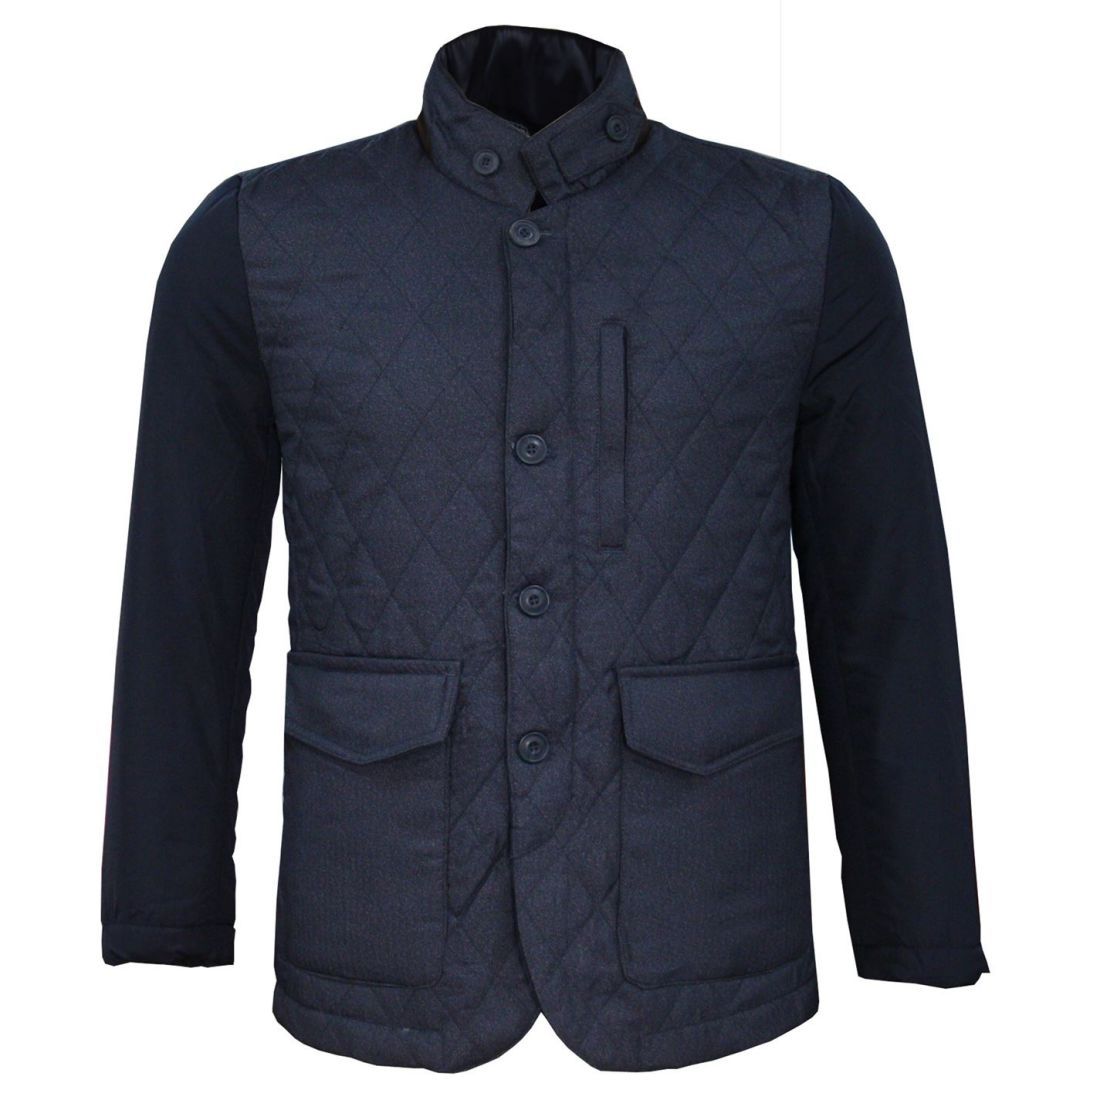 Lee Cooper KD Quilted Jacket Mens Gents Coat Top Lightweight Zip ... 2093071545